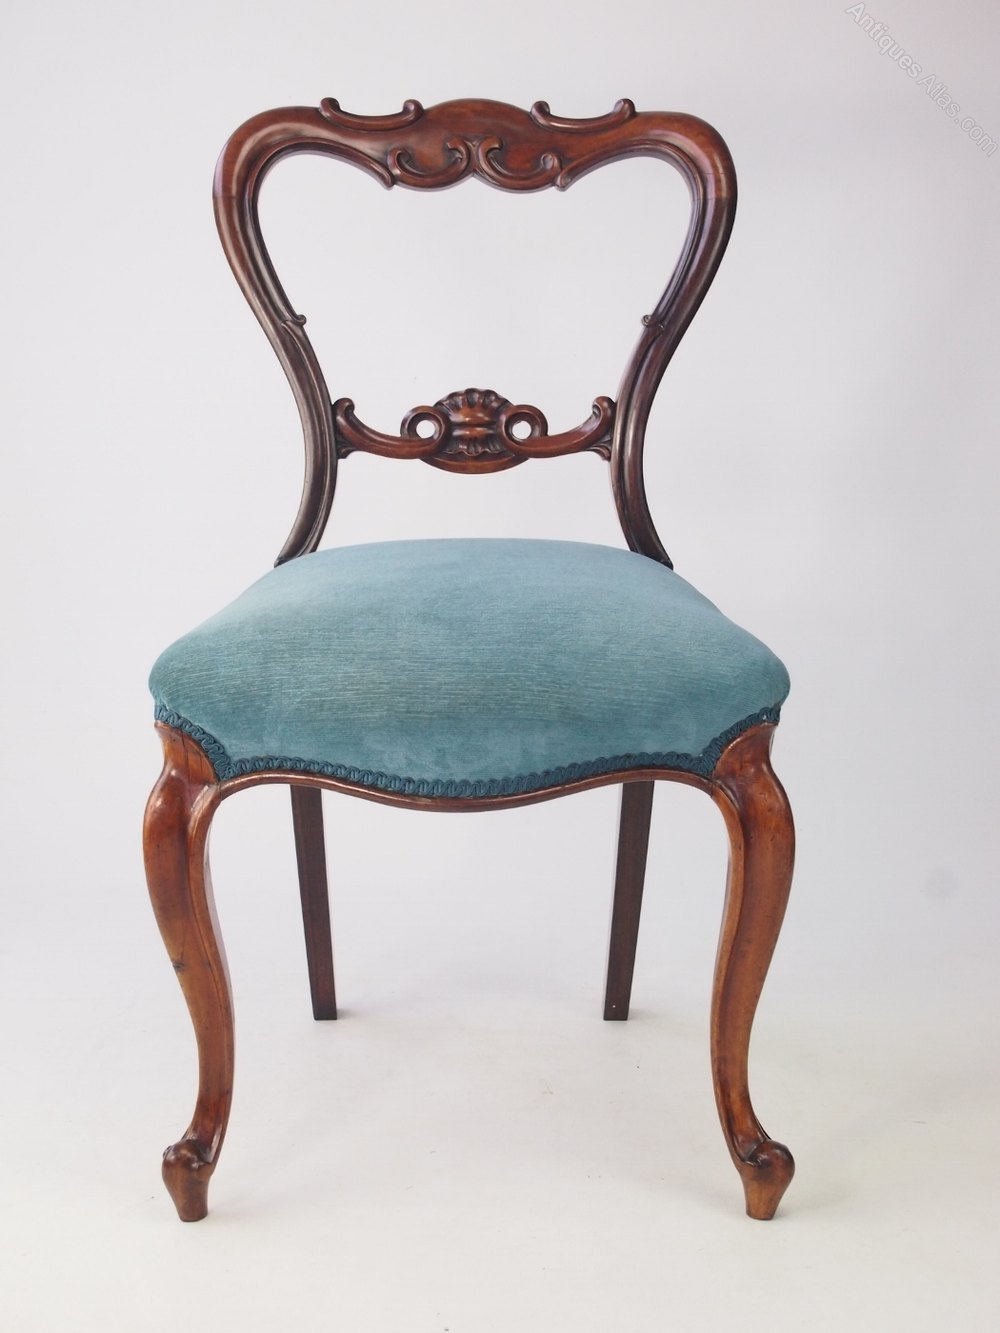 Antique Victorian Rosewood Balloon Back Chair Antiques Atlas